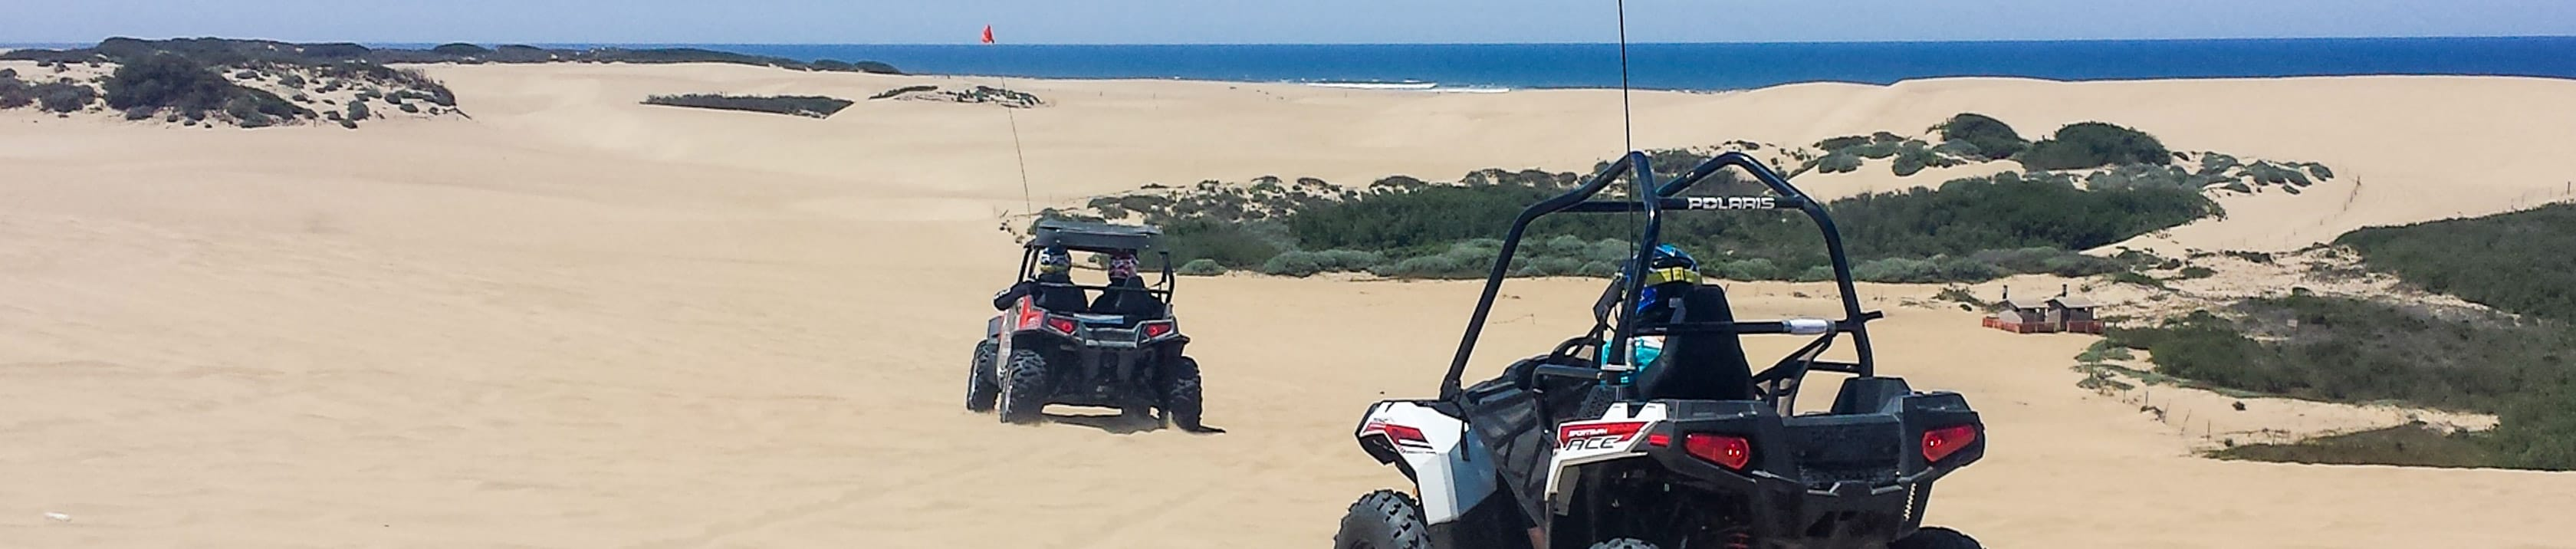 Guests riding in two ATVs